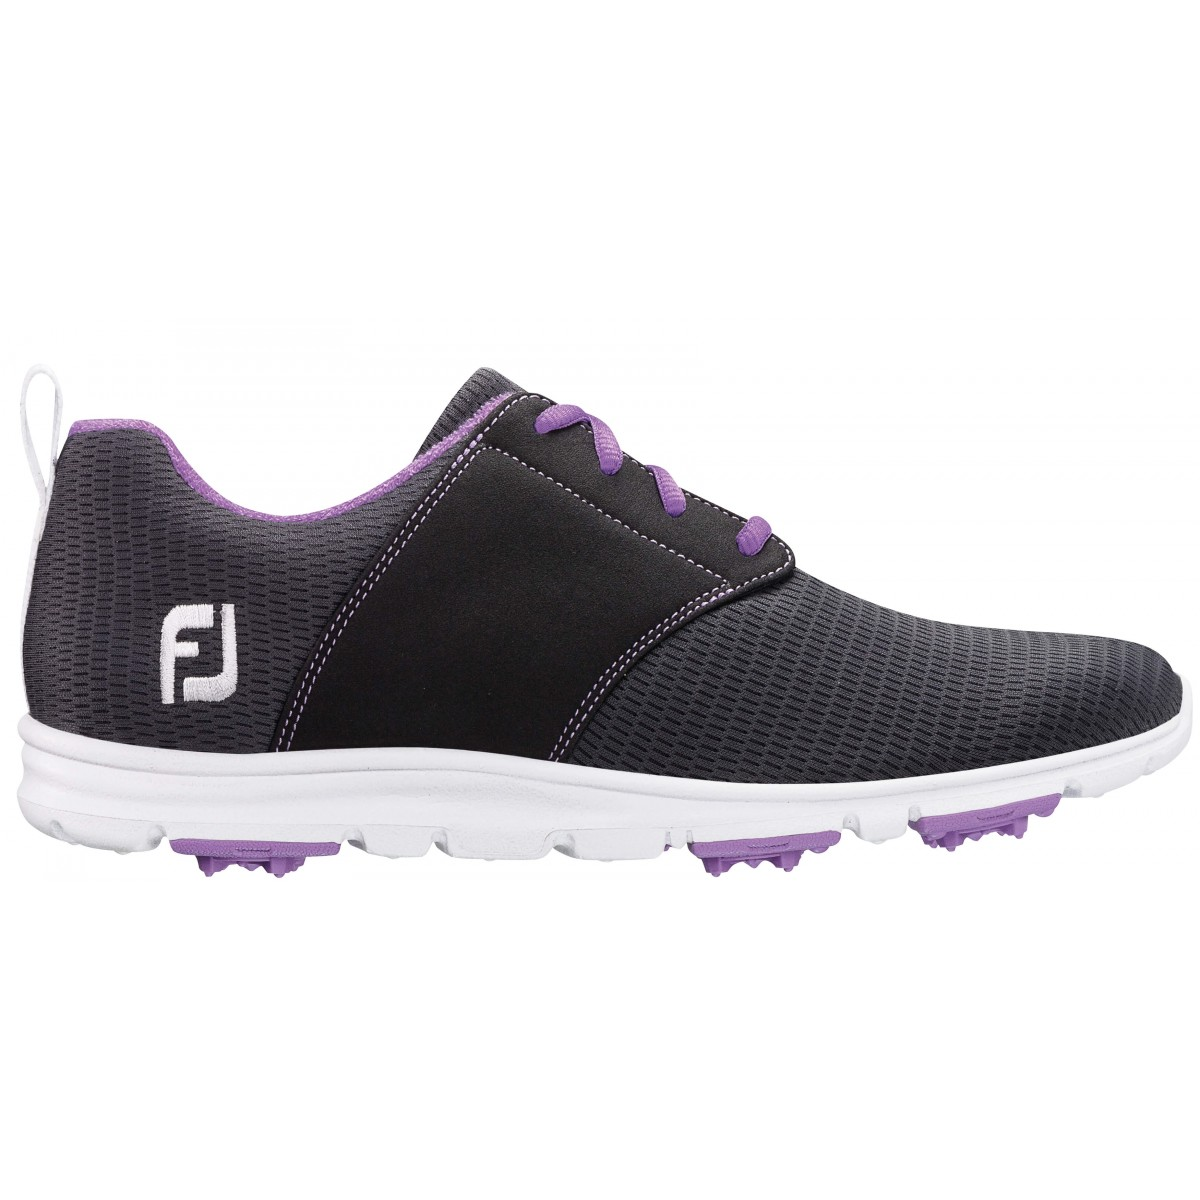 FootJoy Women's Enjoy Charcoal Golf Shoes - Closeout Style 95711